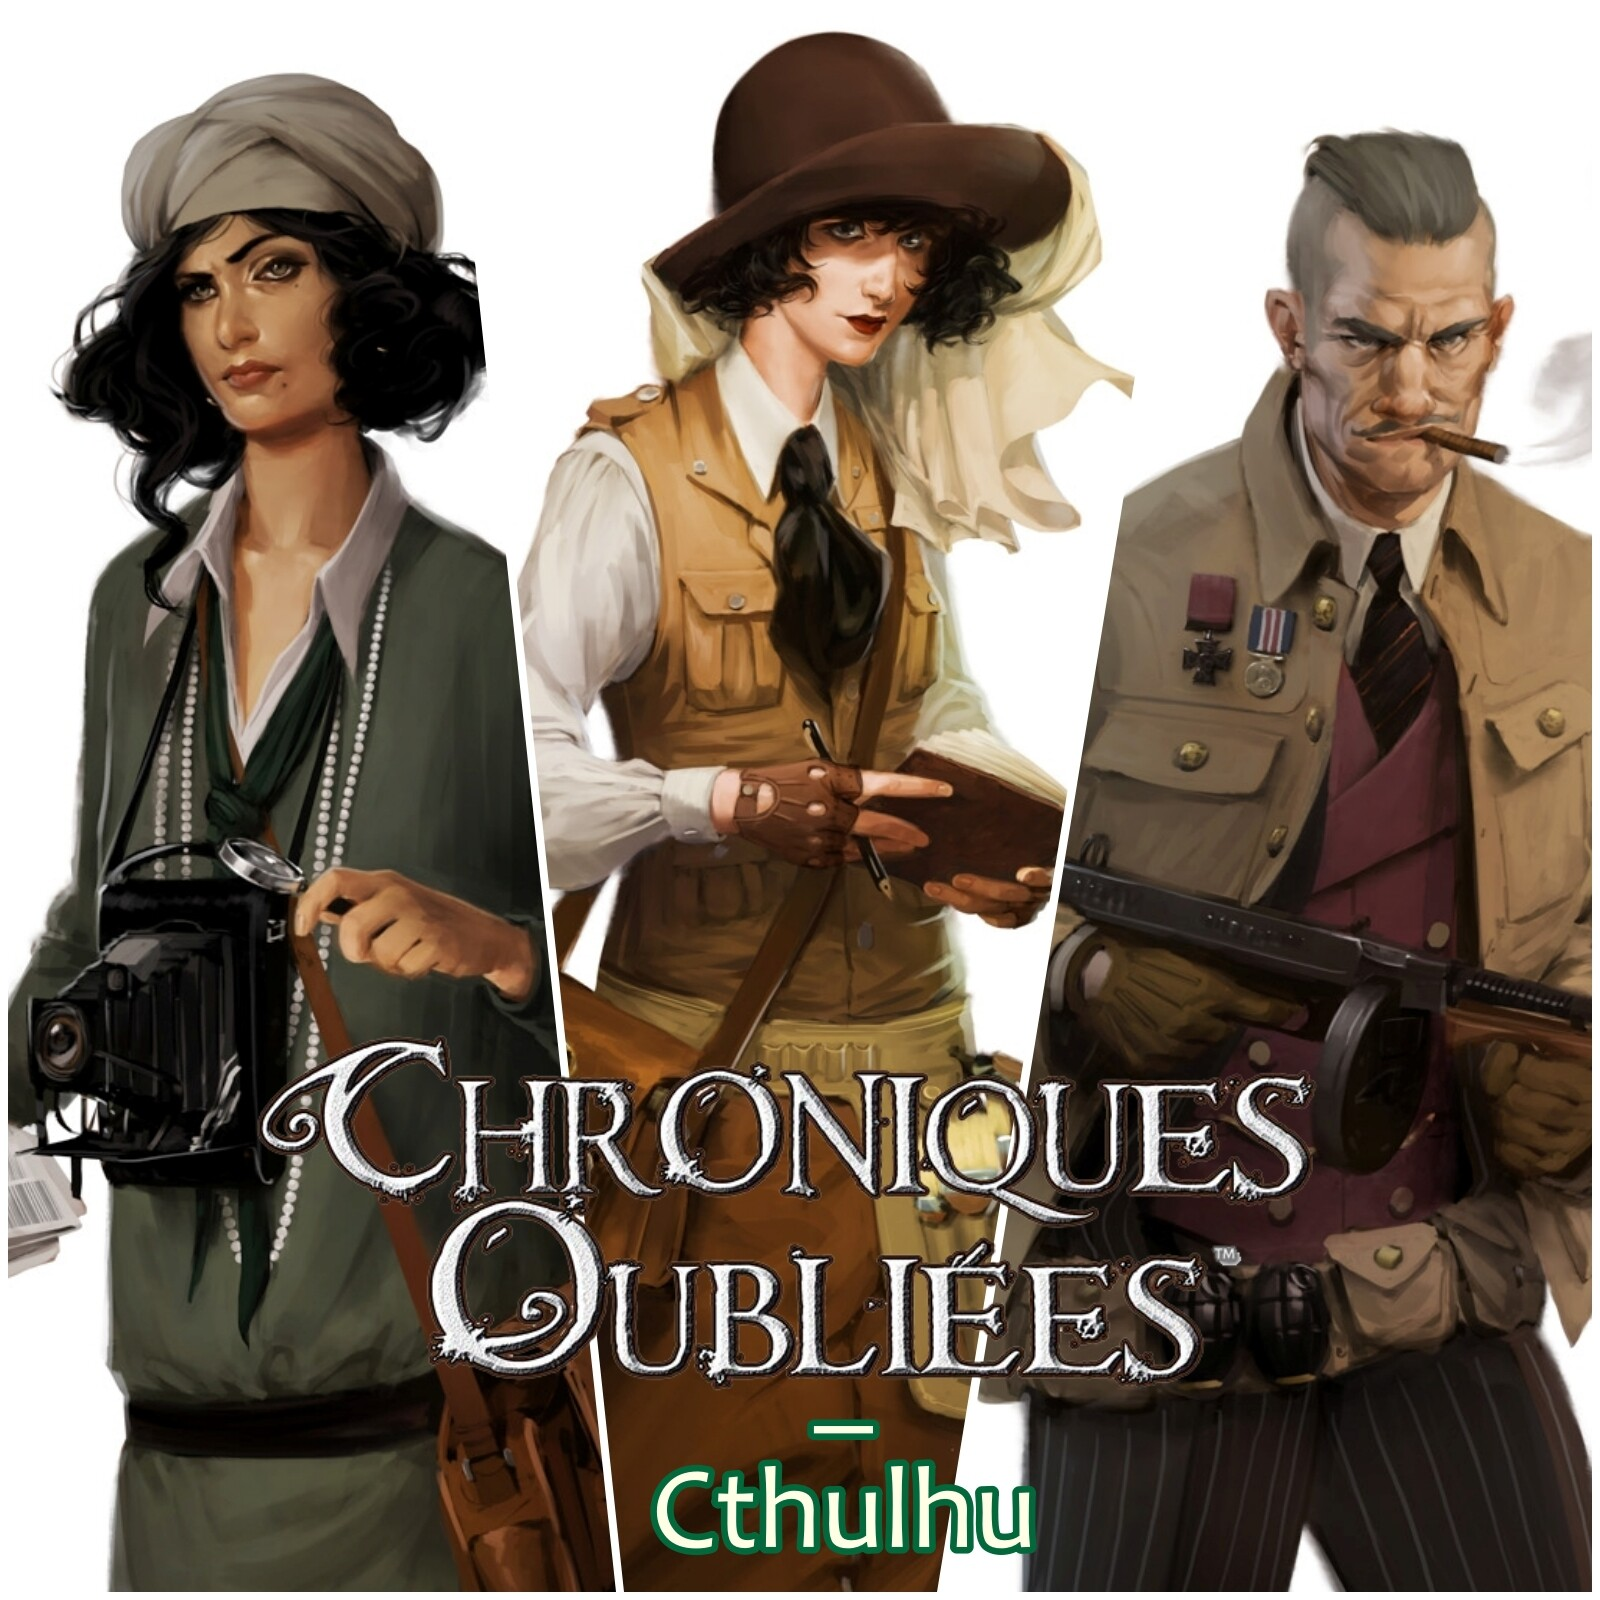 Chroniques Oubliées: Cthulhu - Characters